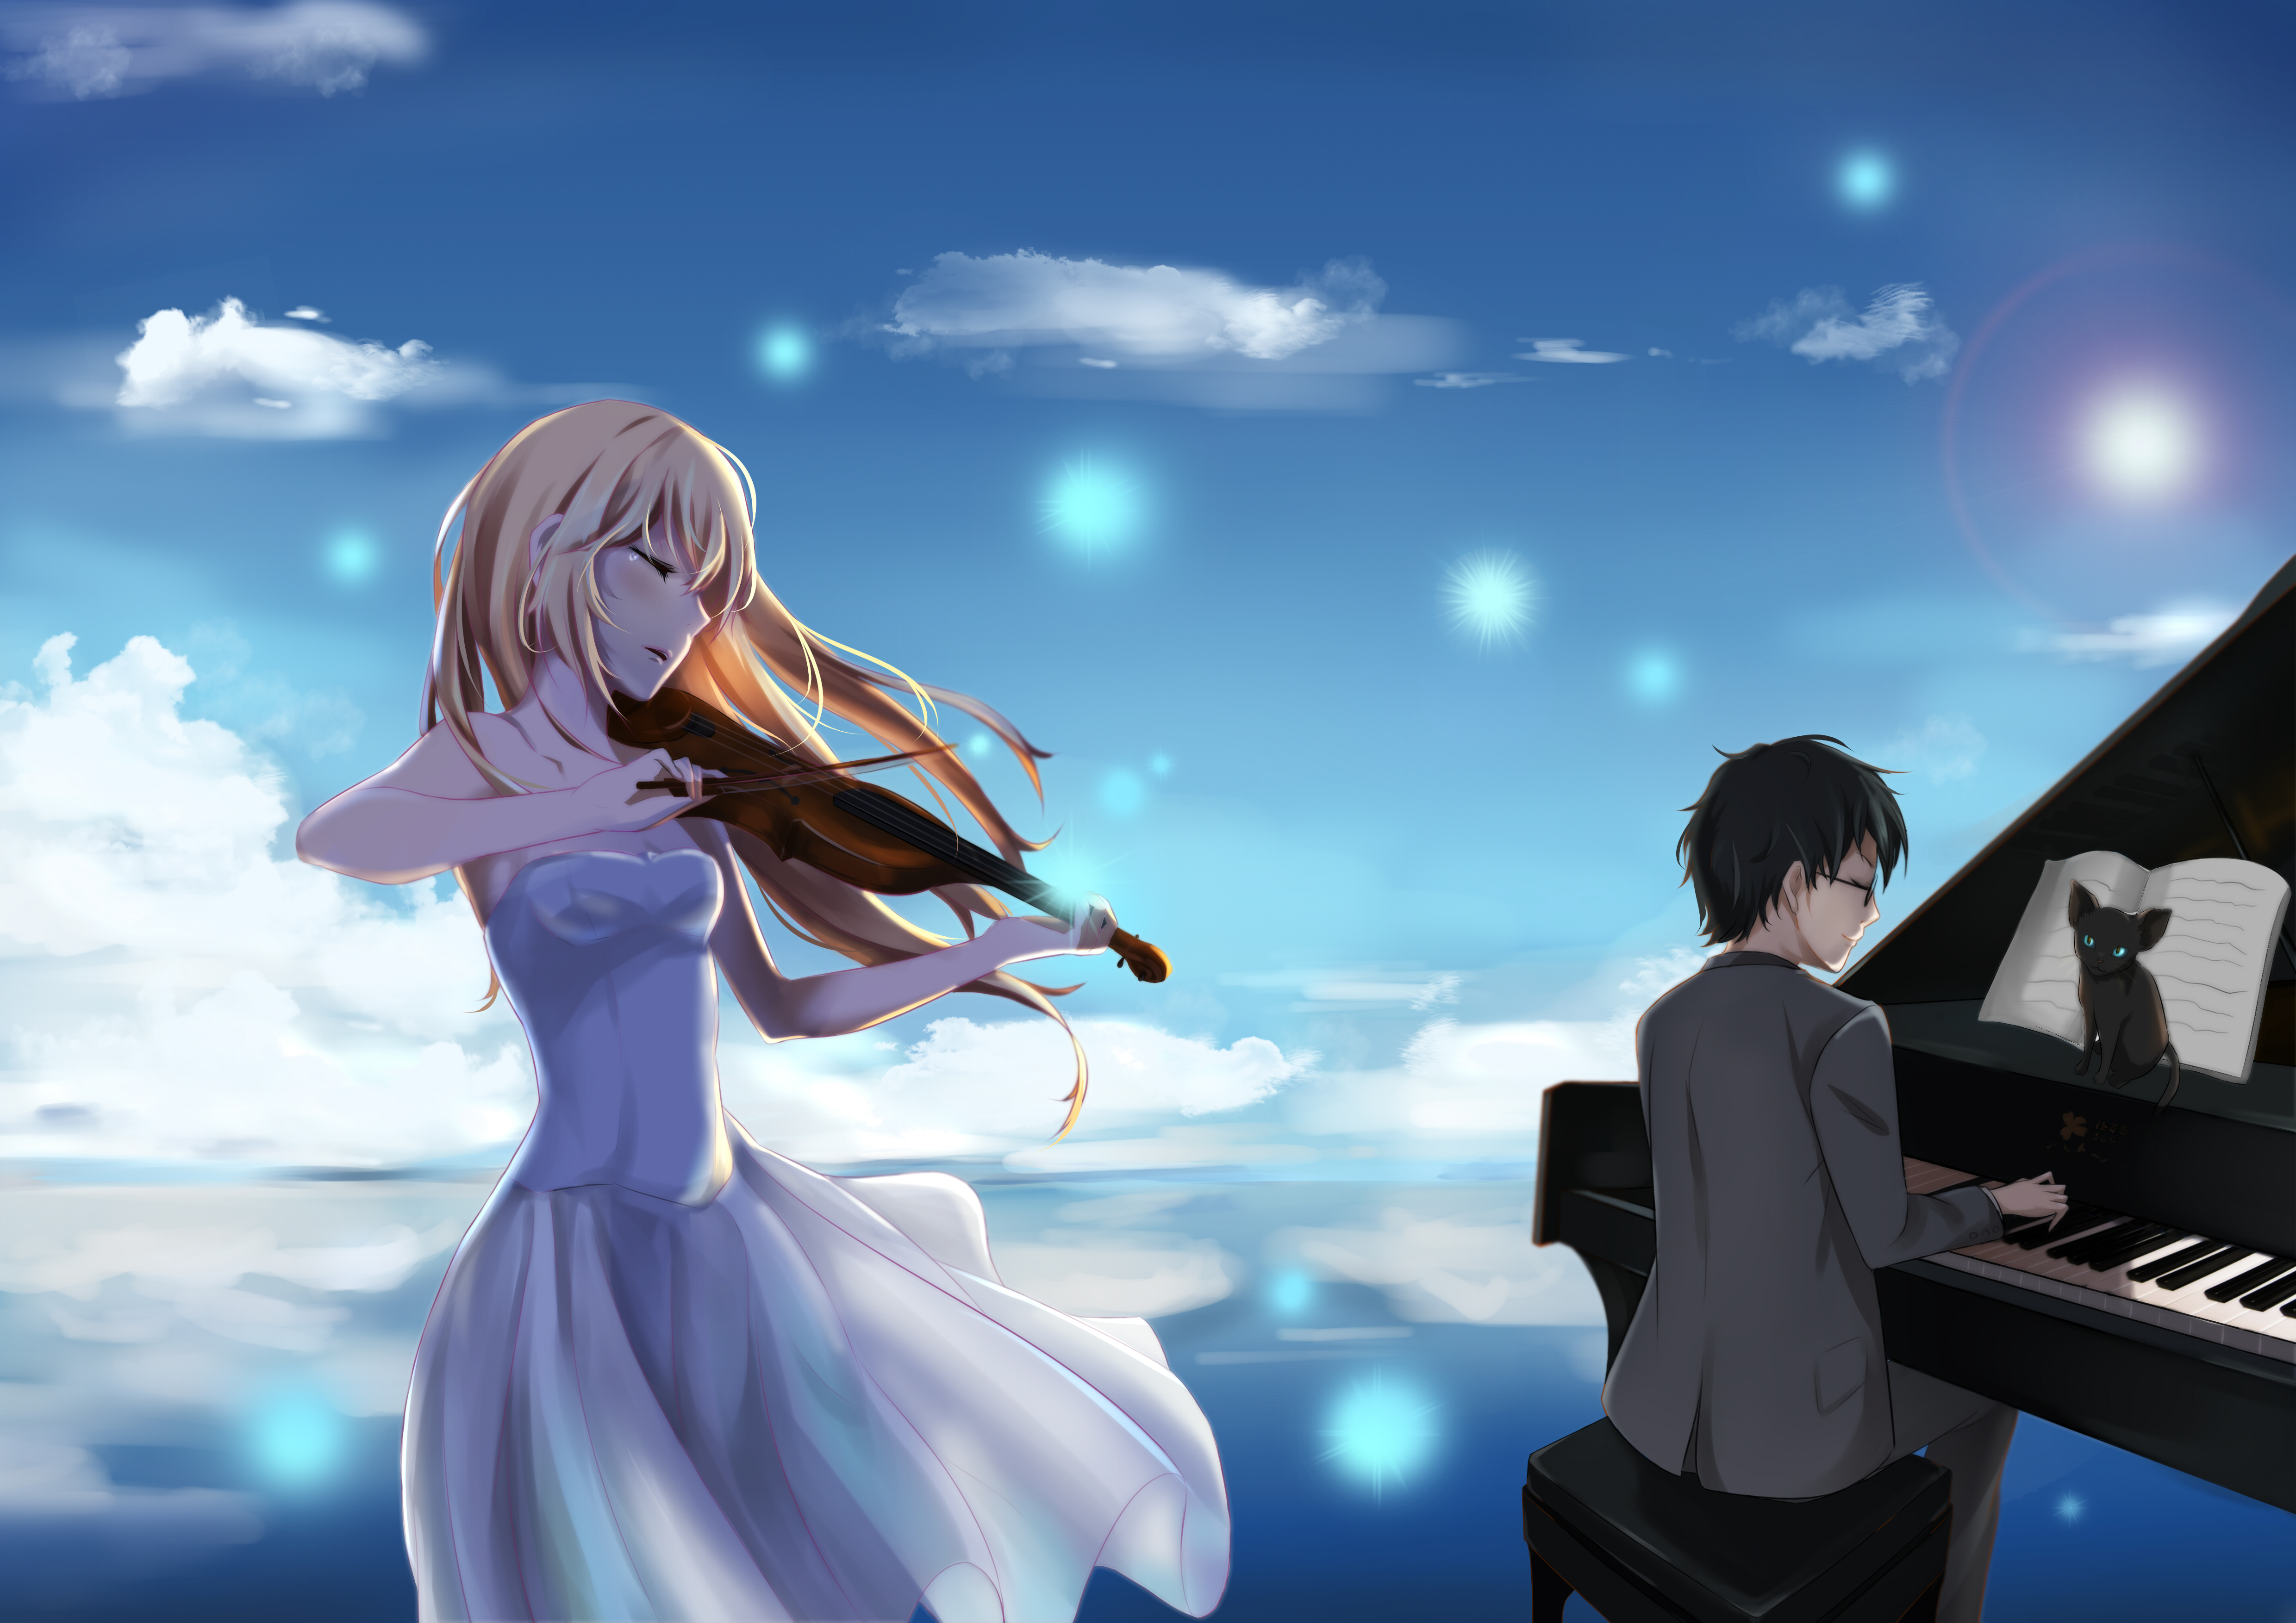 Your Lie In April Backgrounds Hd 2389687 Hd Wallpaper